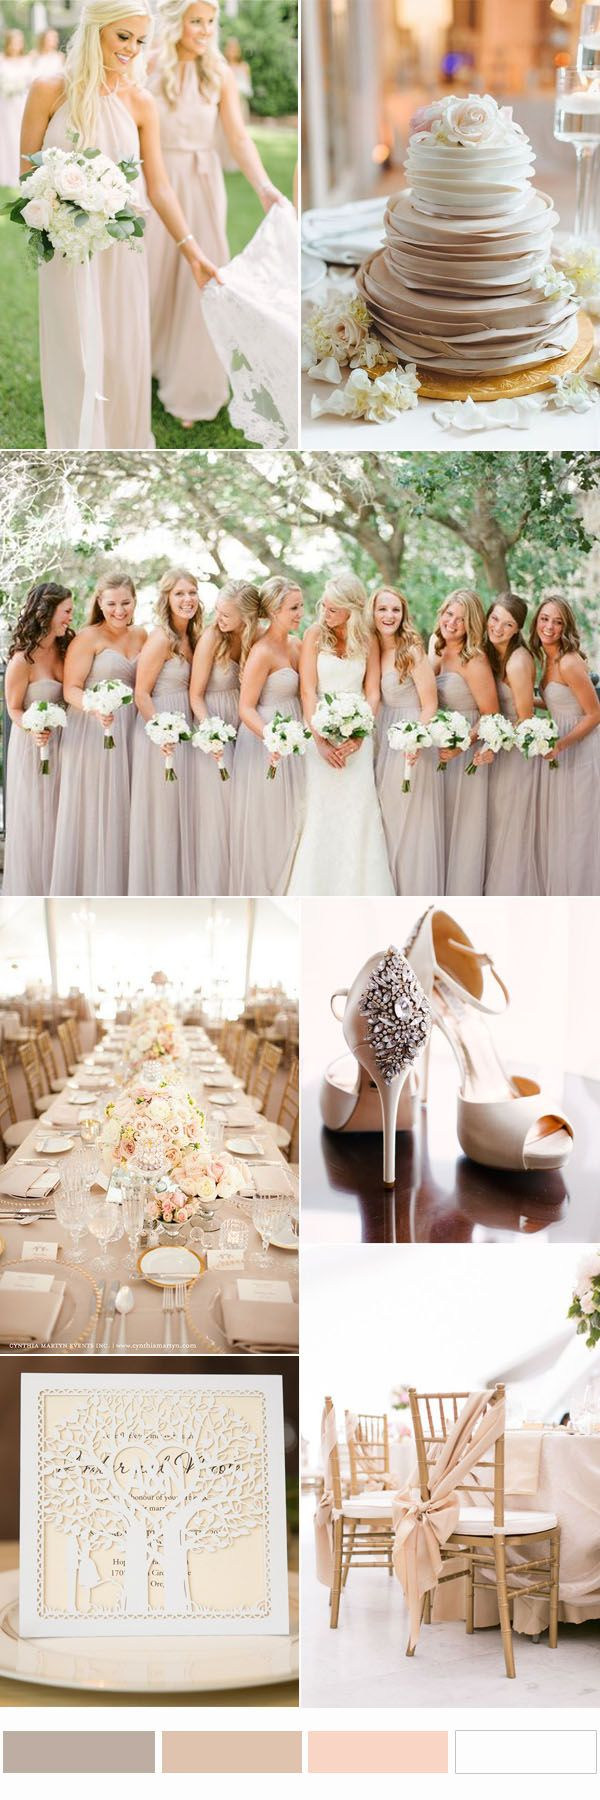 9 Most Popular Wedding Color Schemes from Pinterest to ...